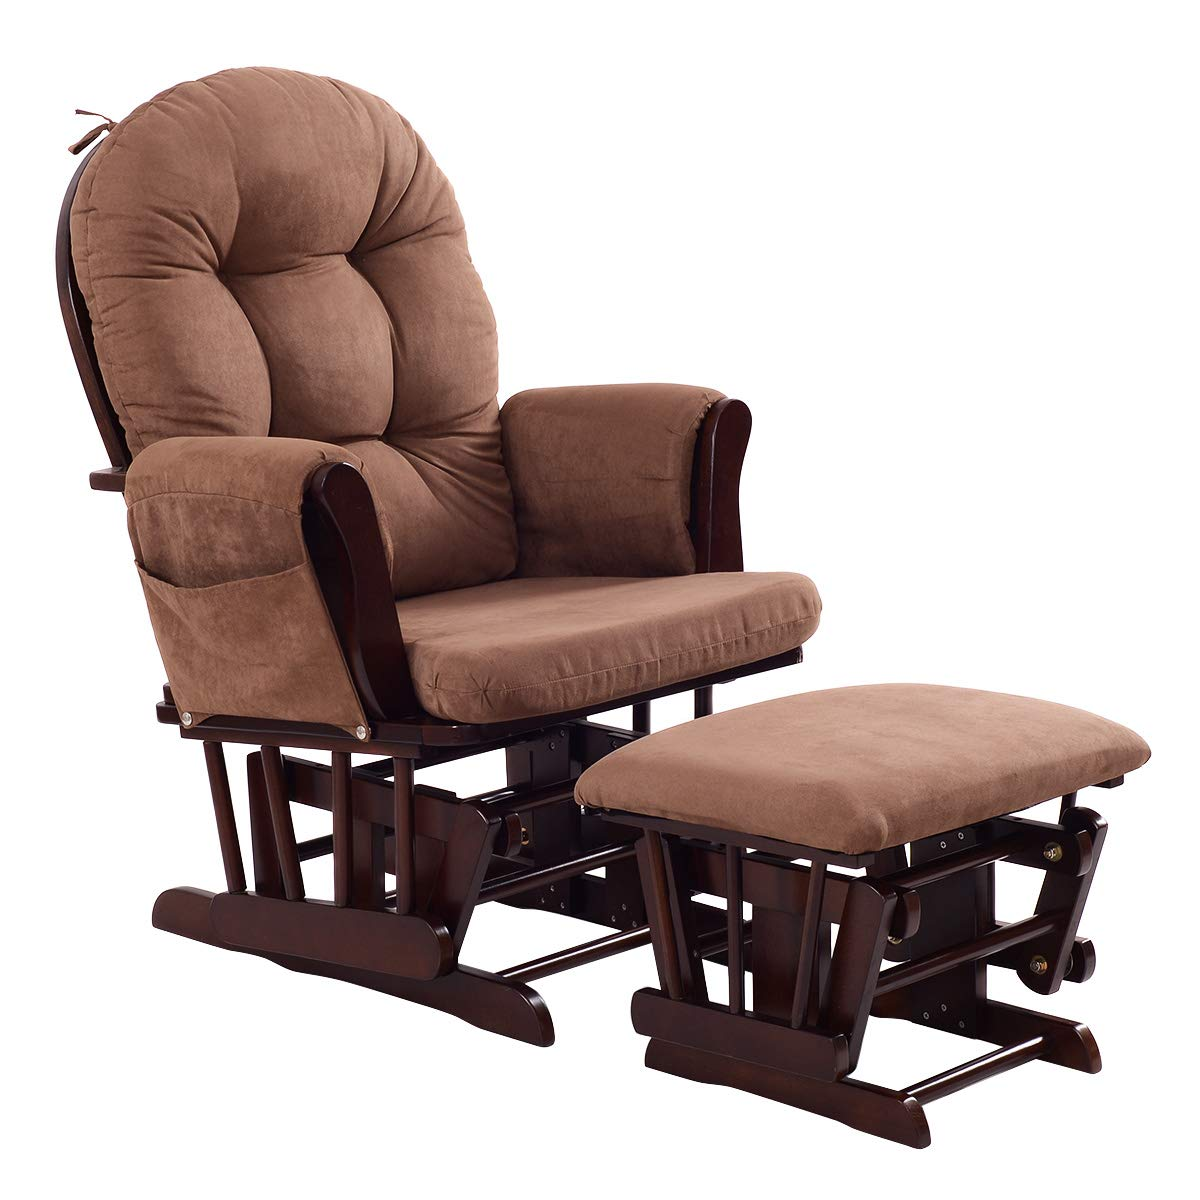 Costzon Baby Glider and Ottoman Cushion Set, Wood Baby Rocker Nursery Furniture, Upholstered Comfort Nursery Chair & Ottoman with Padded Arms (Espresso)